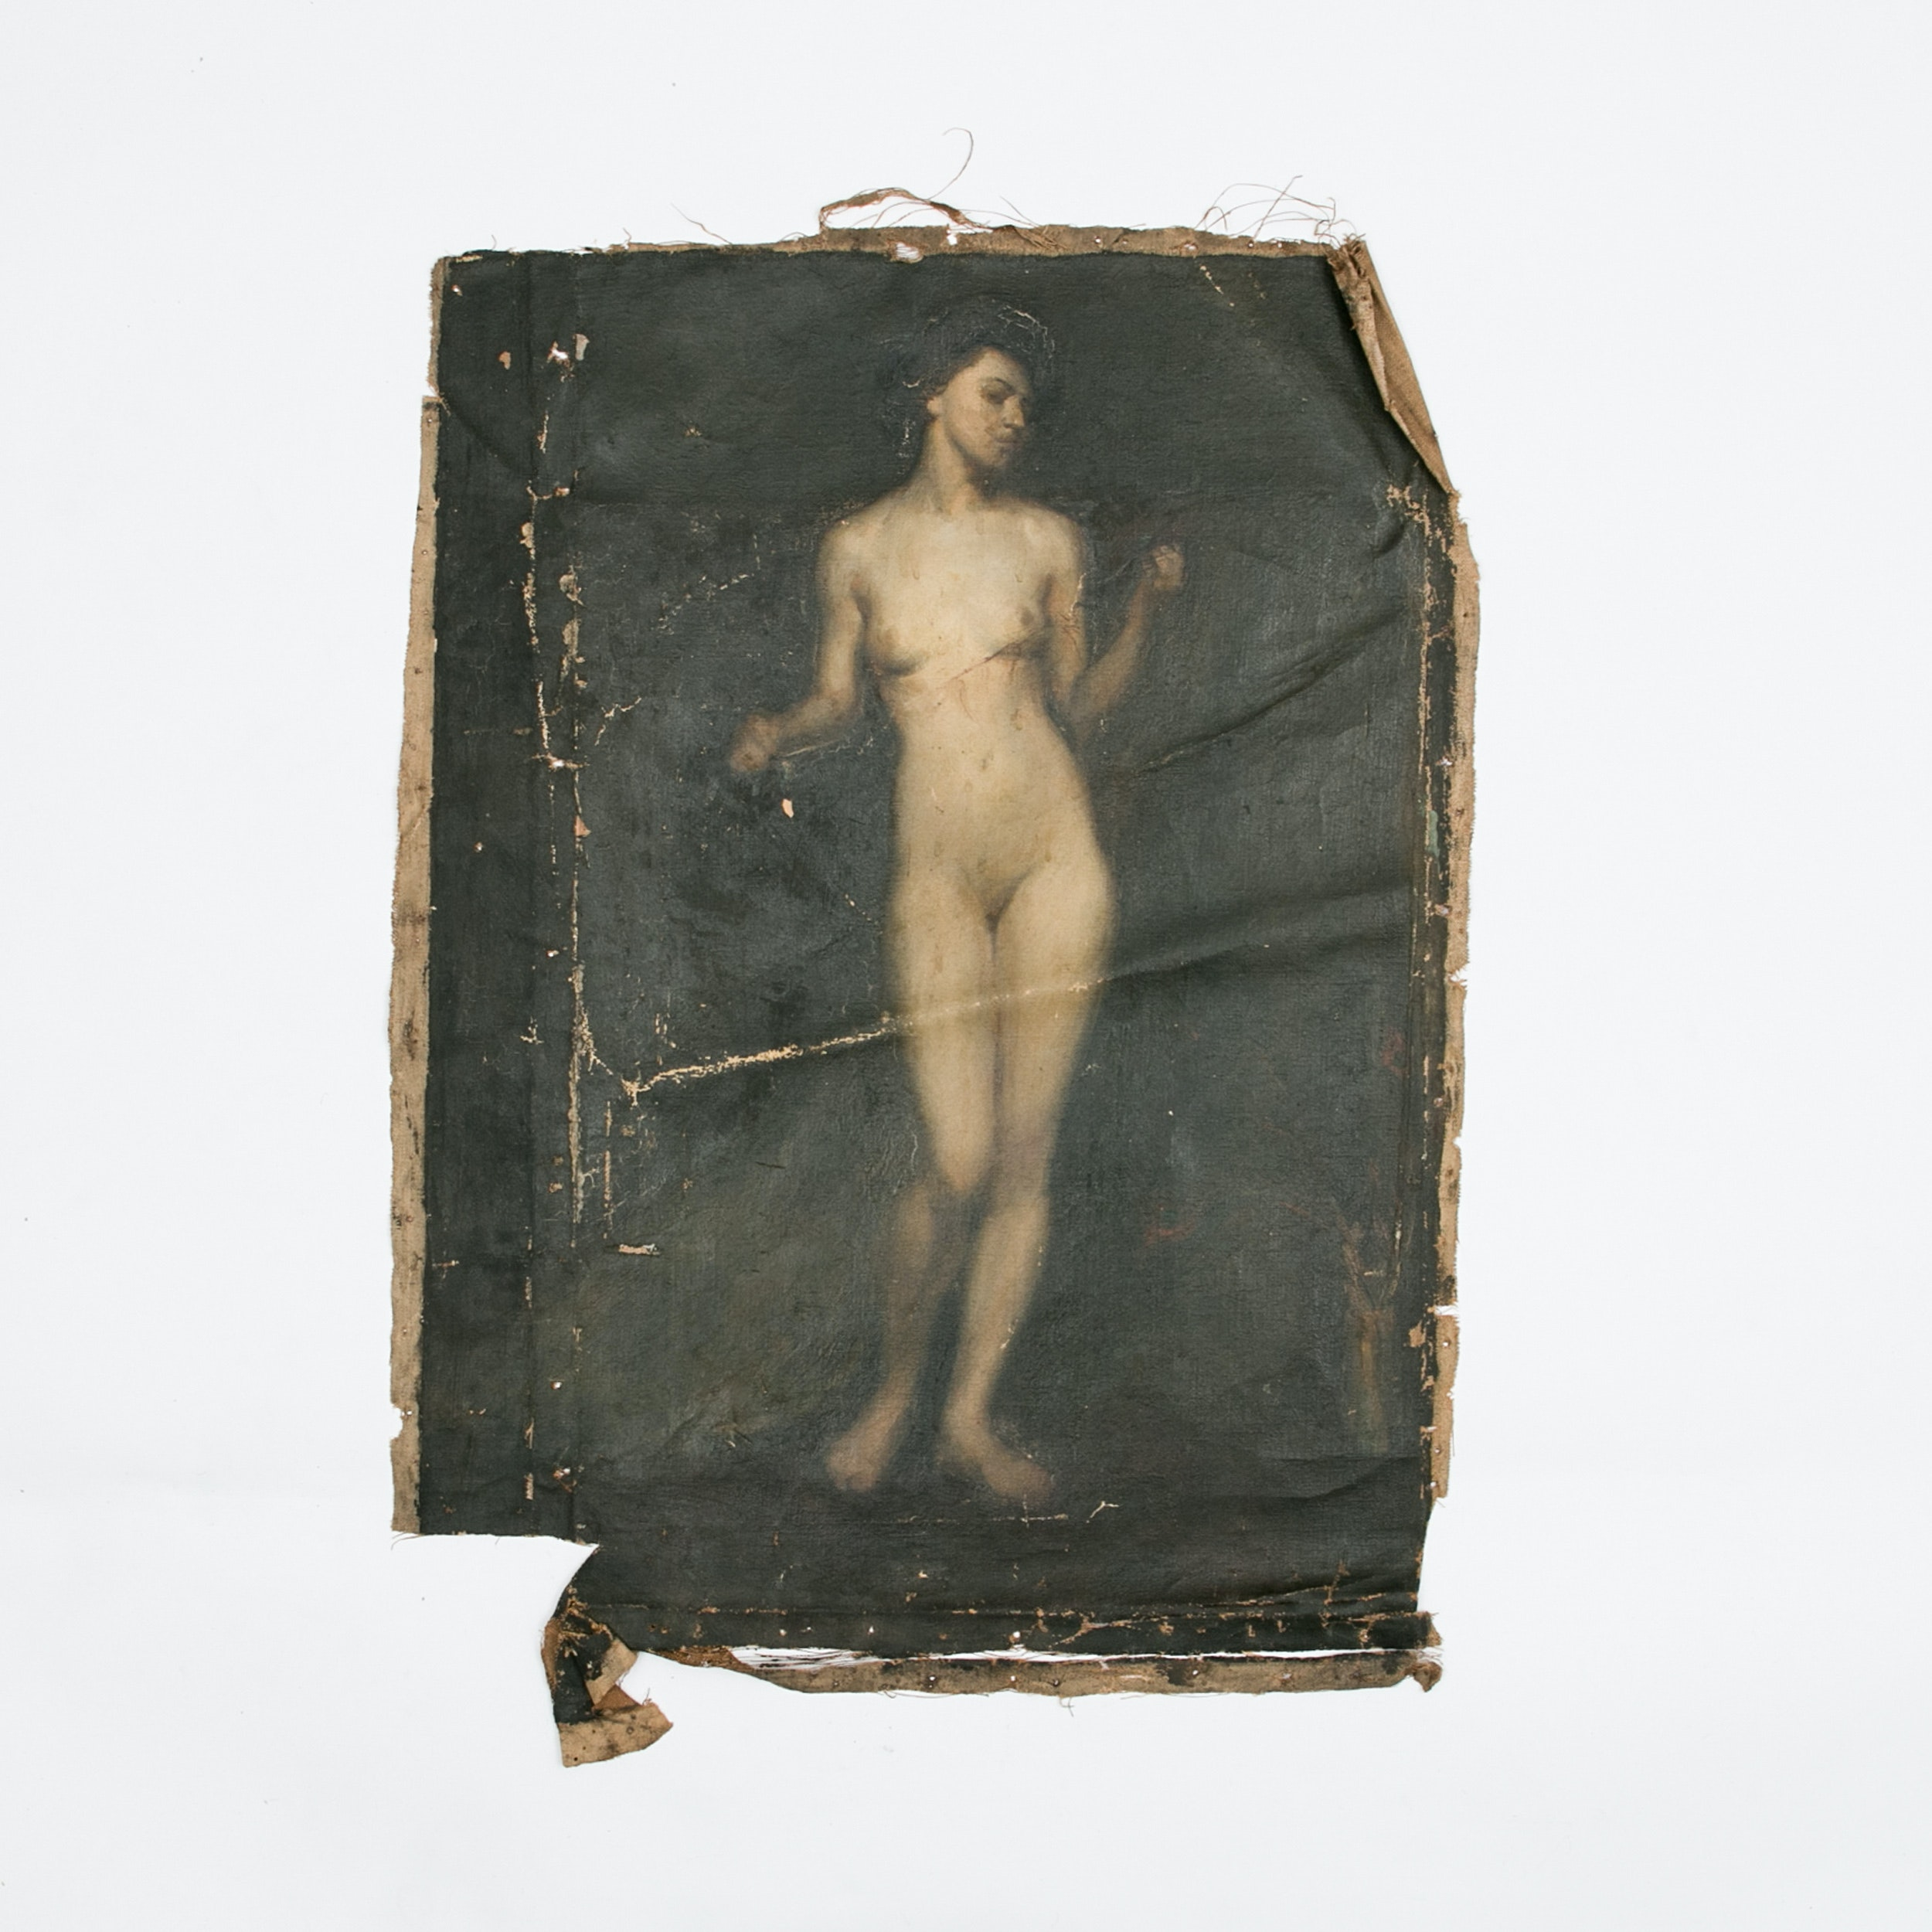 Emily B. Waite, Study of a Female Nude, Unstretched Oil on Canvas